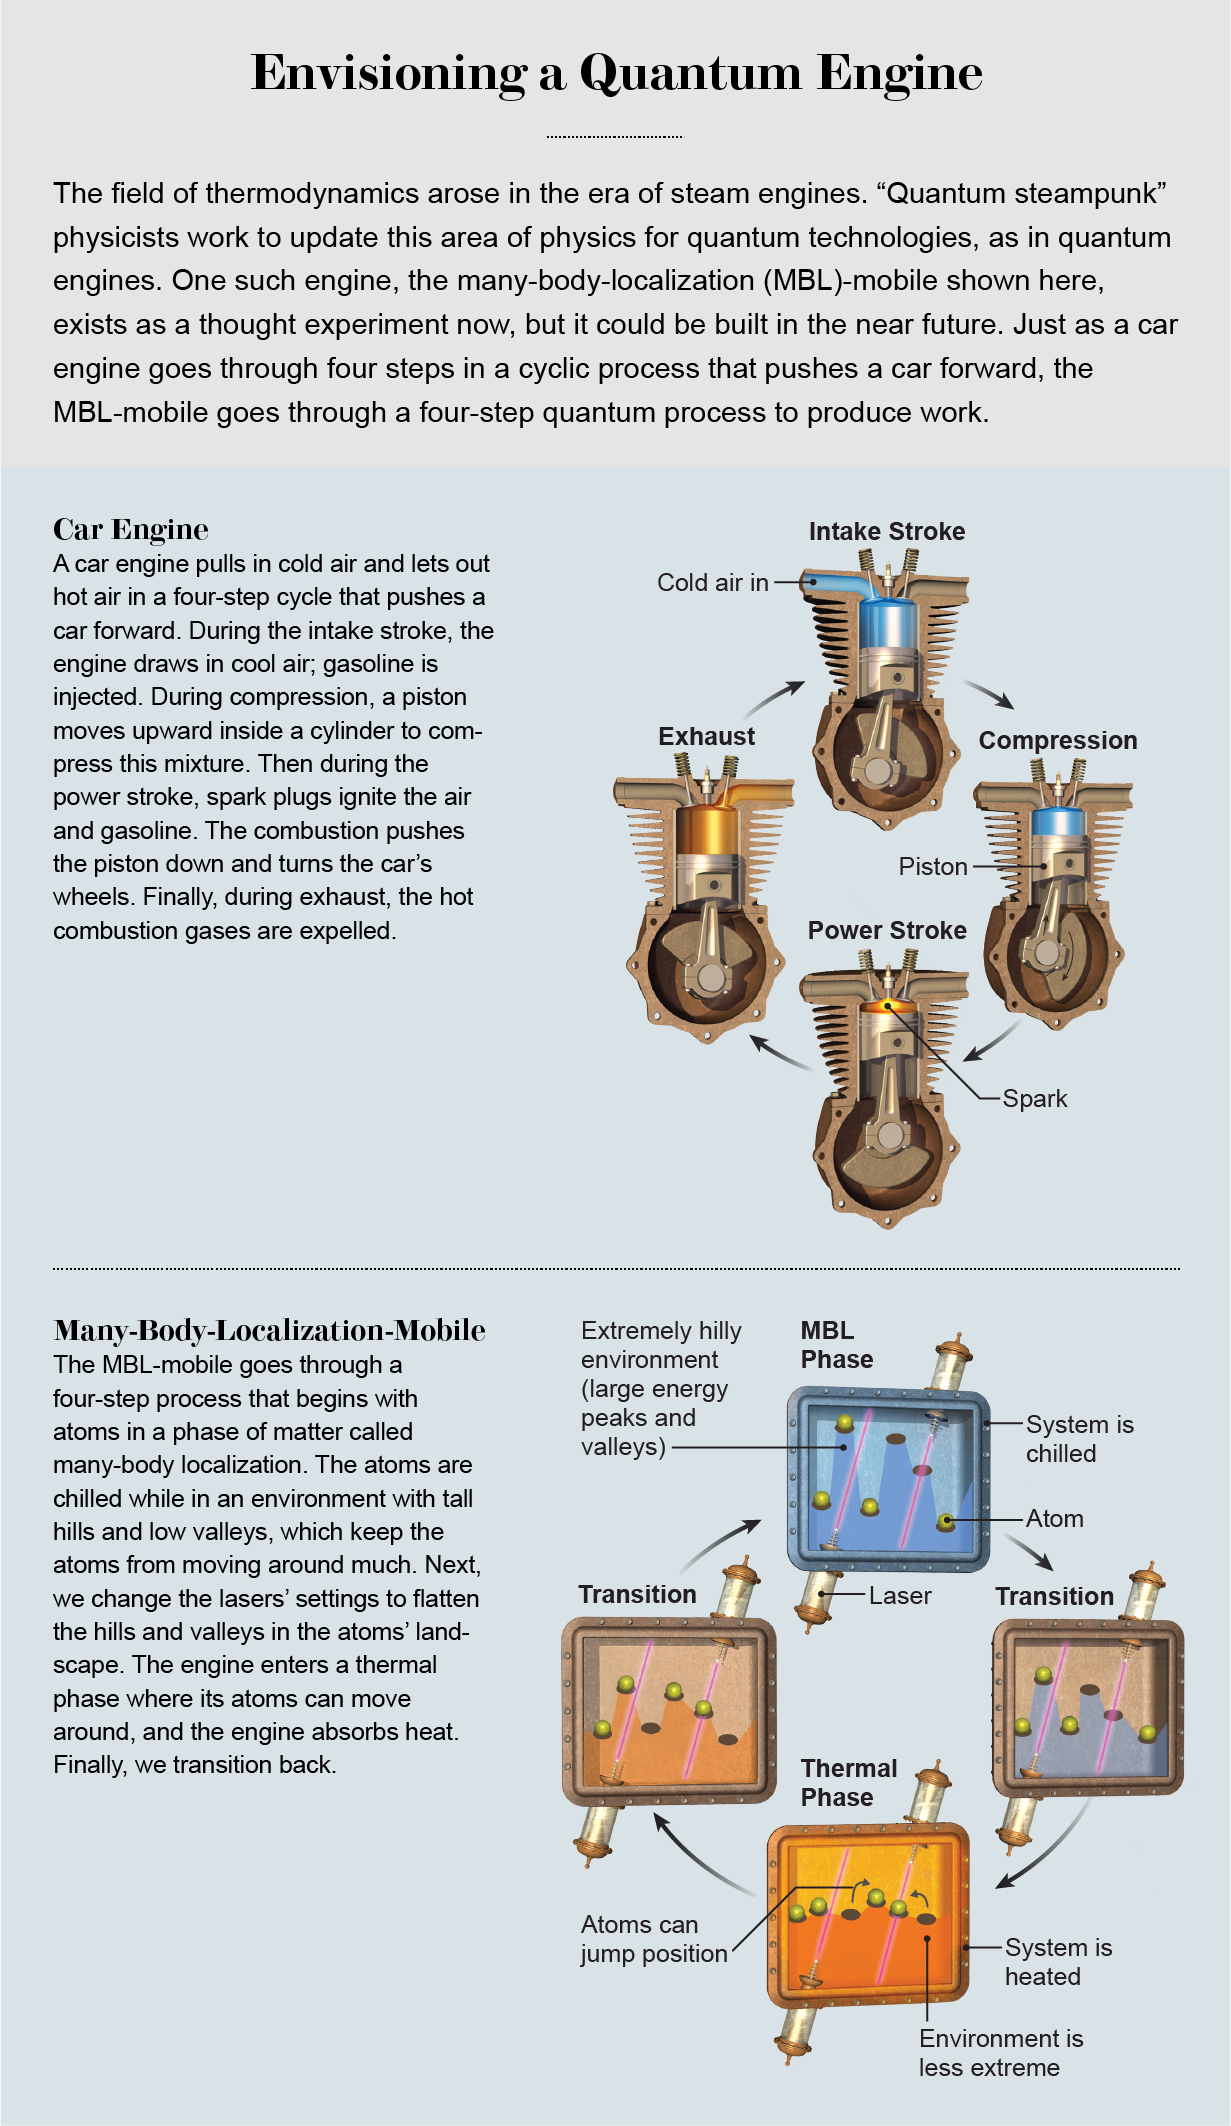 Illustration demonstrates that the MBL-mobile—a quantum steampunk thought experiment—goes through a four-step cyclical process to produce work, similar to a car engine